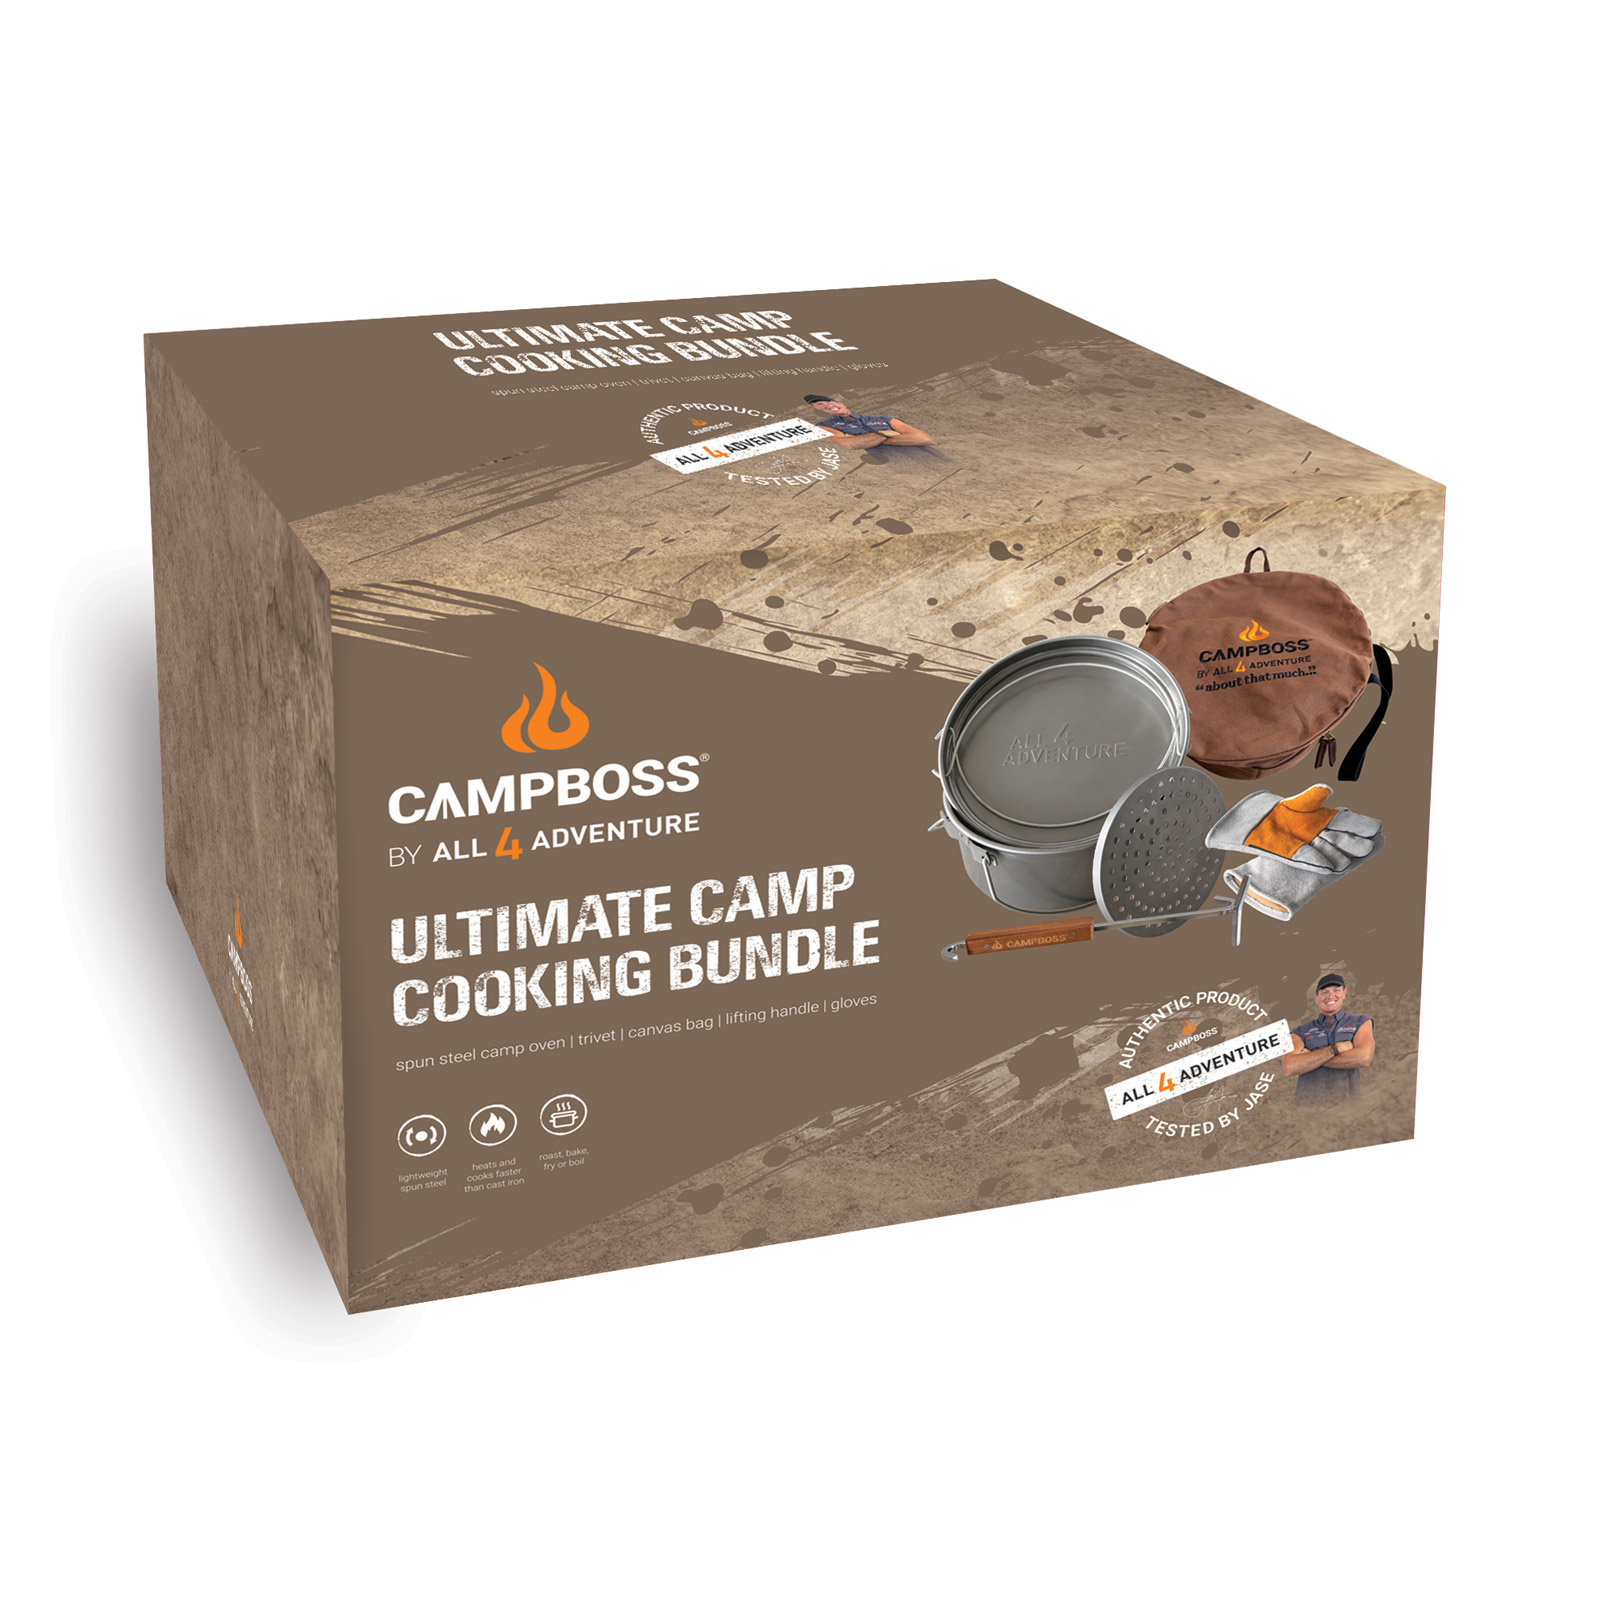 All4Adventure CampBoss Forfait Cuisine de Camp Ultime